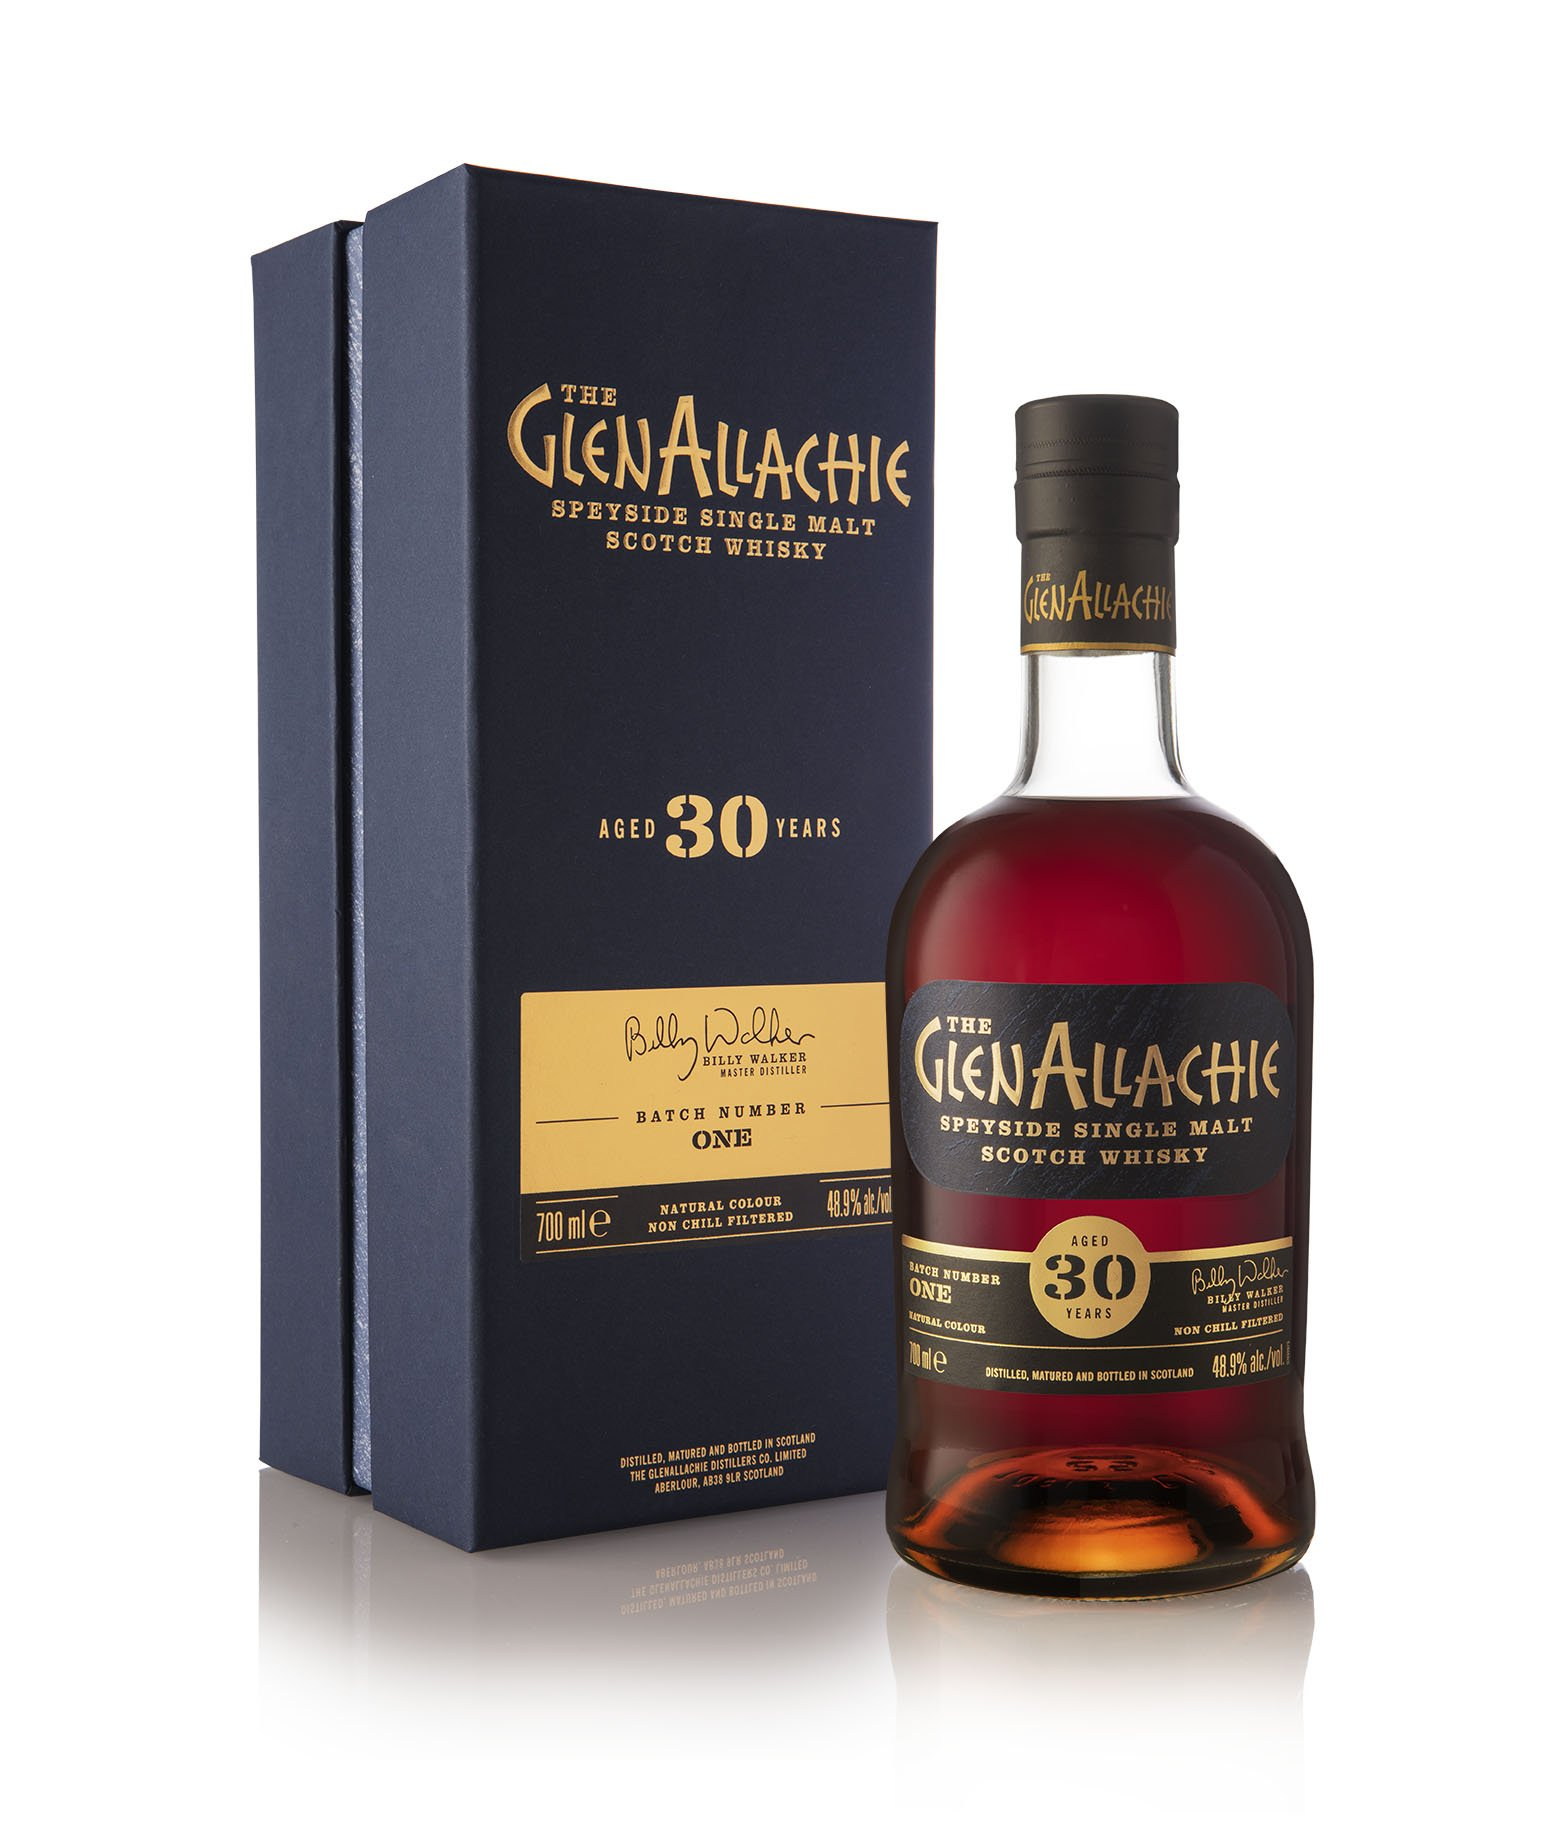 The GlenAllachie 30 Year Old Cask Strength